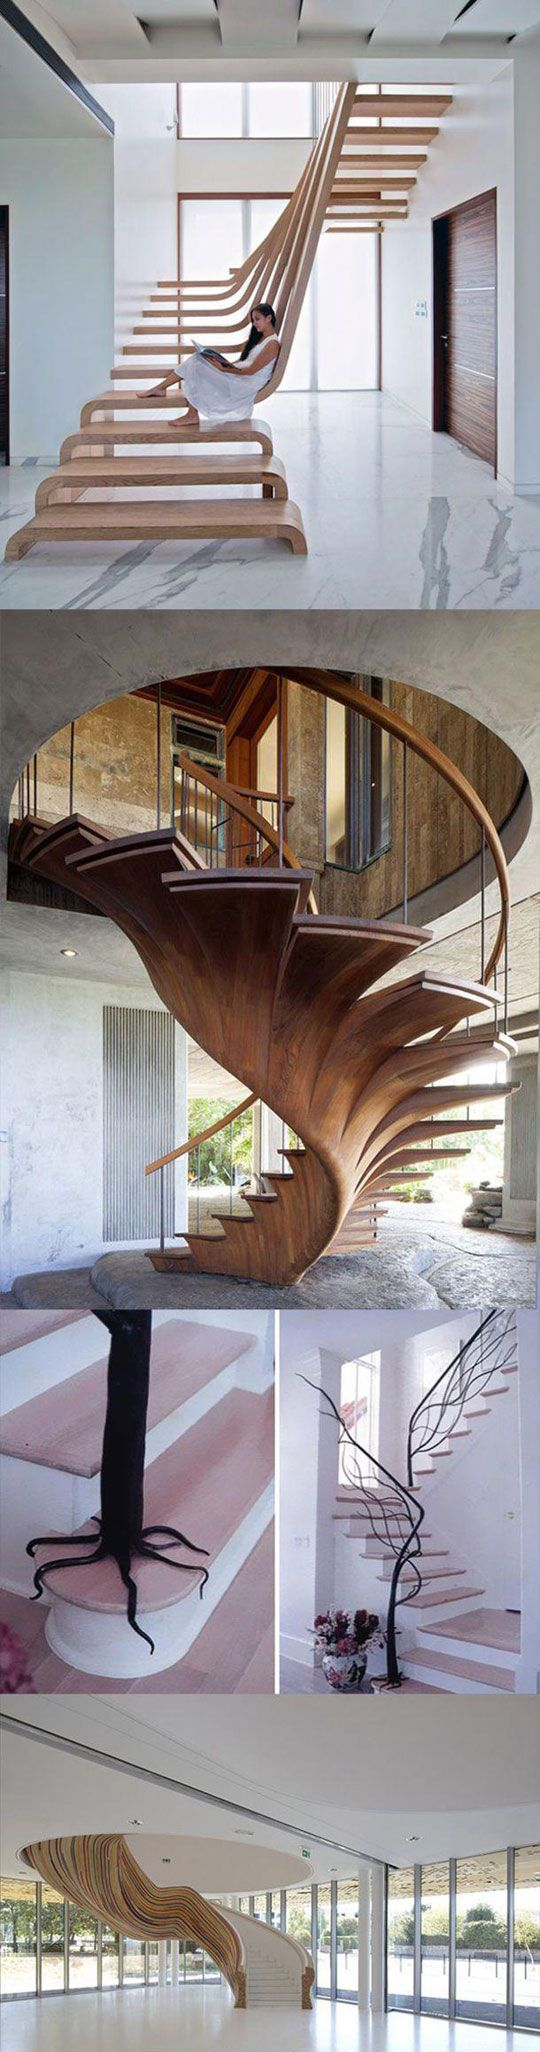 some stairs...